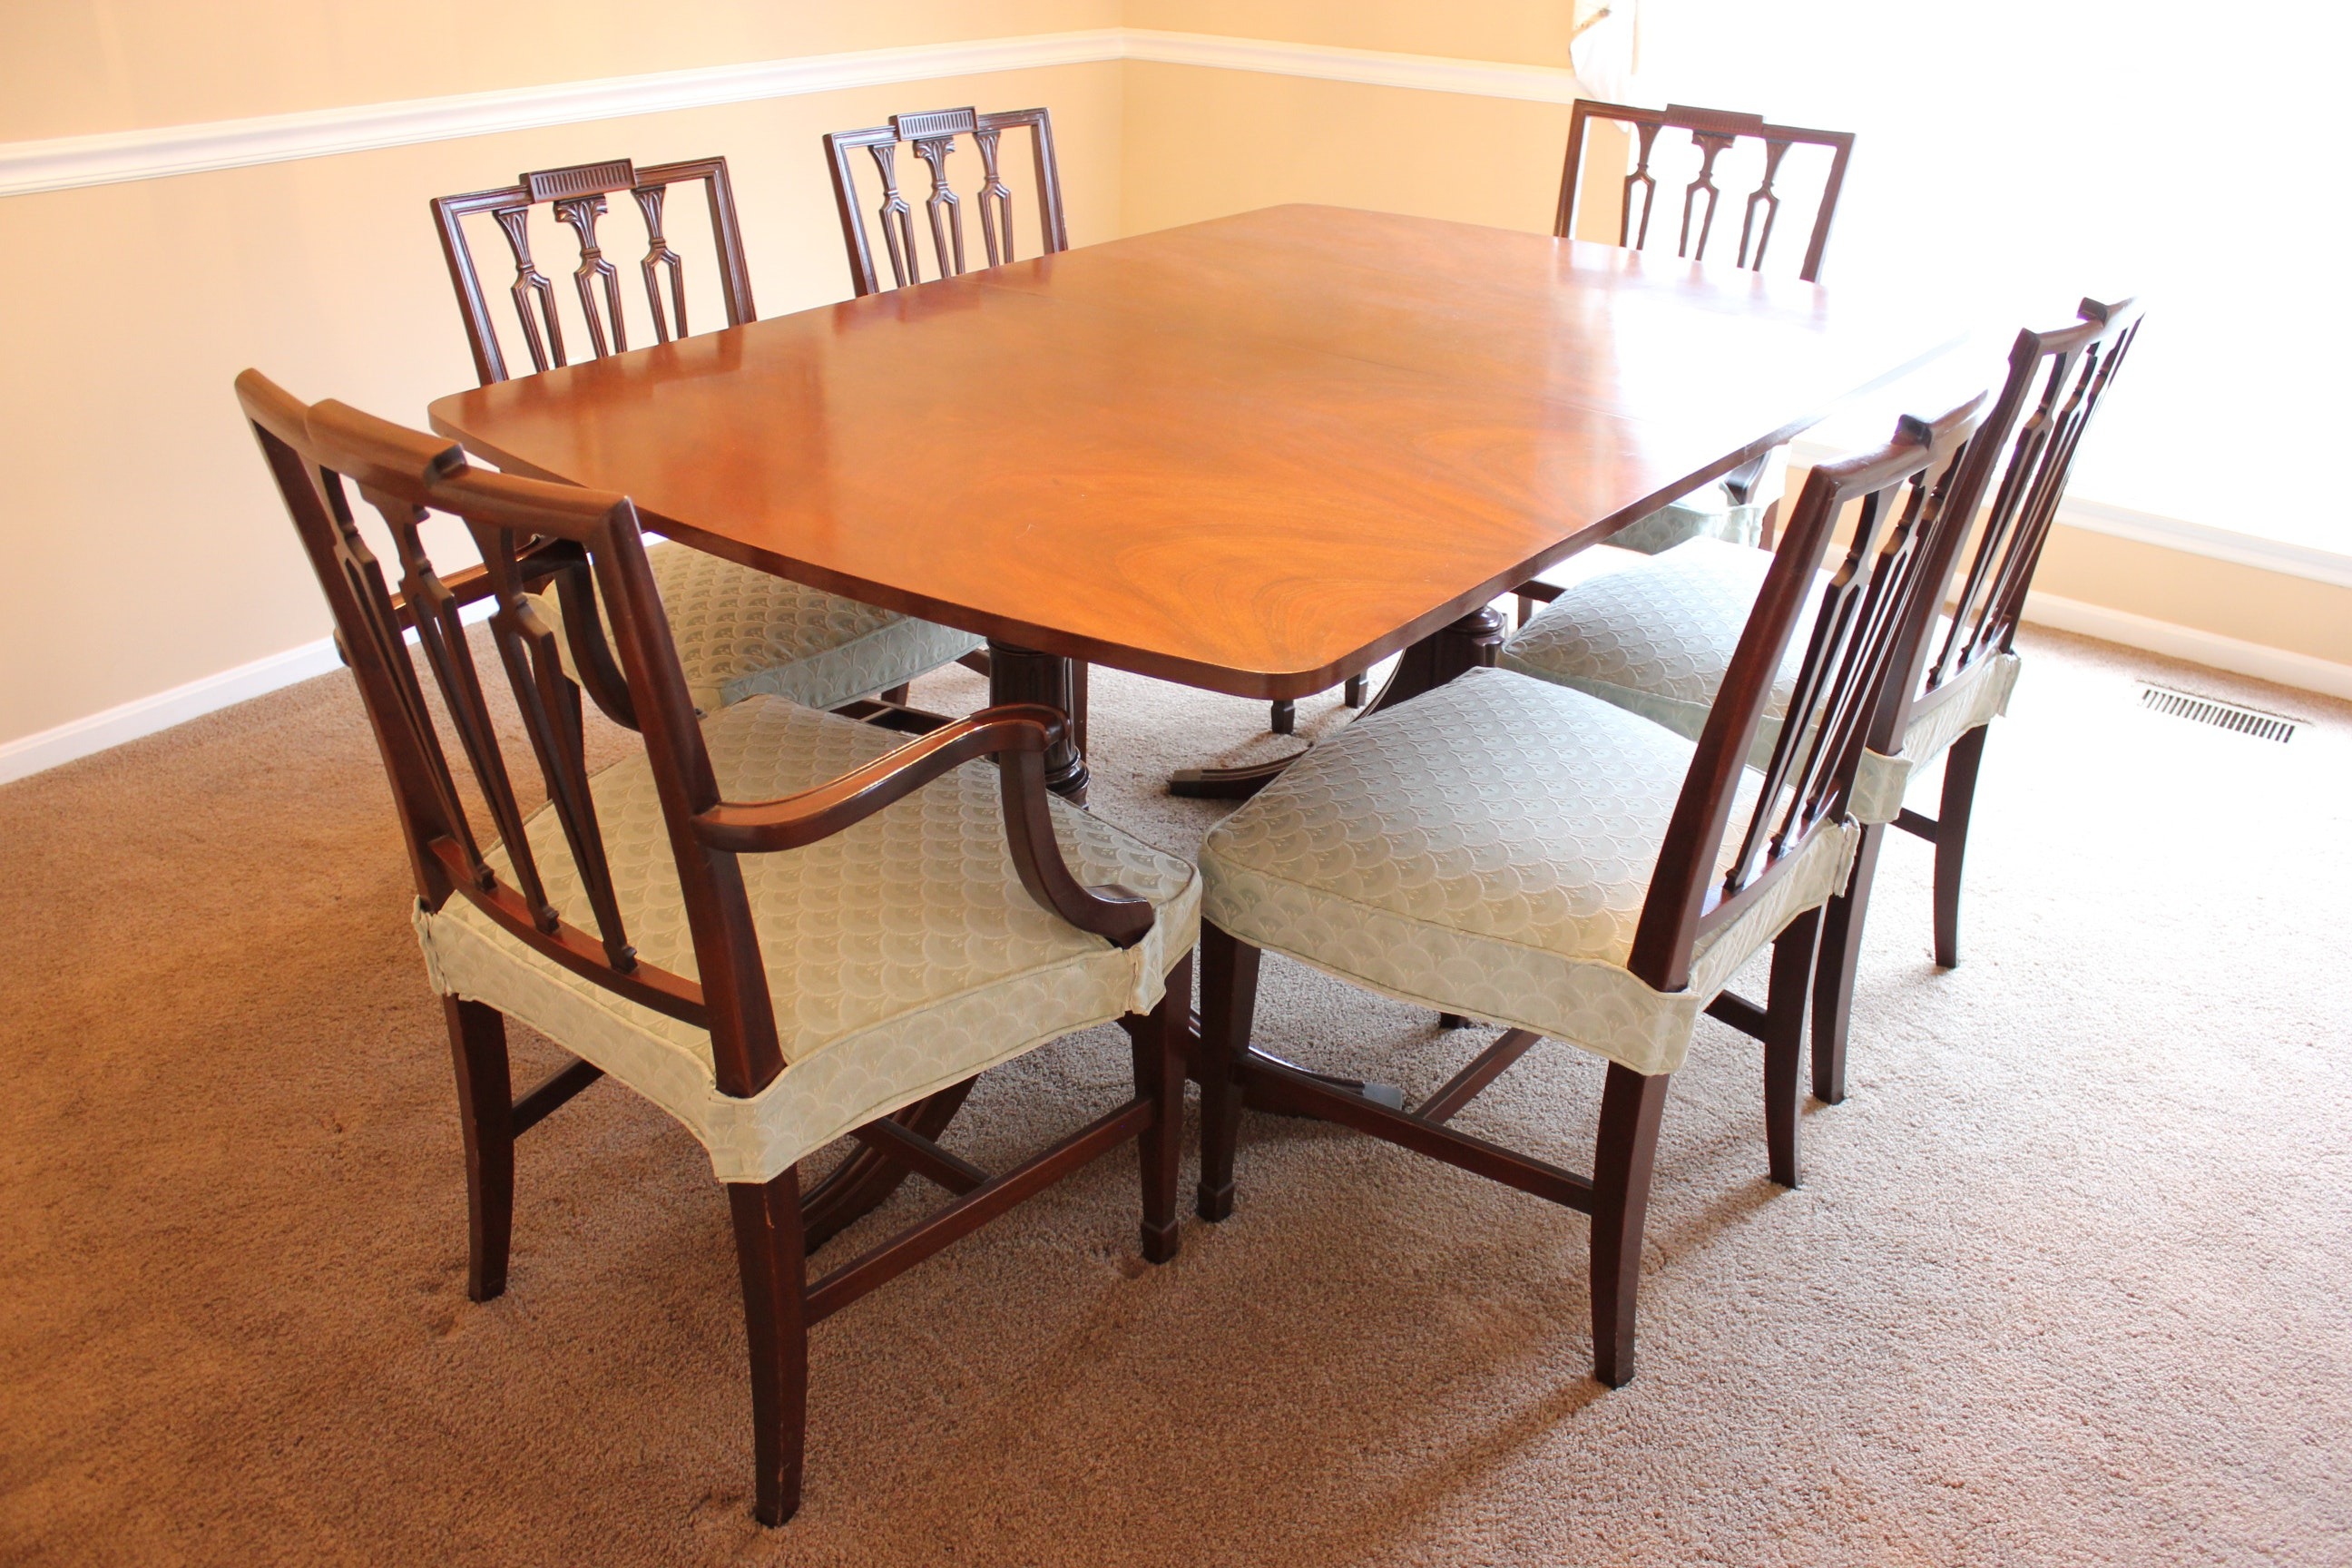 Duncan phyfe rose back chairs - Duncan Phyfe Style Veneered Mahogany Dining Table And Chairs